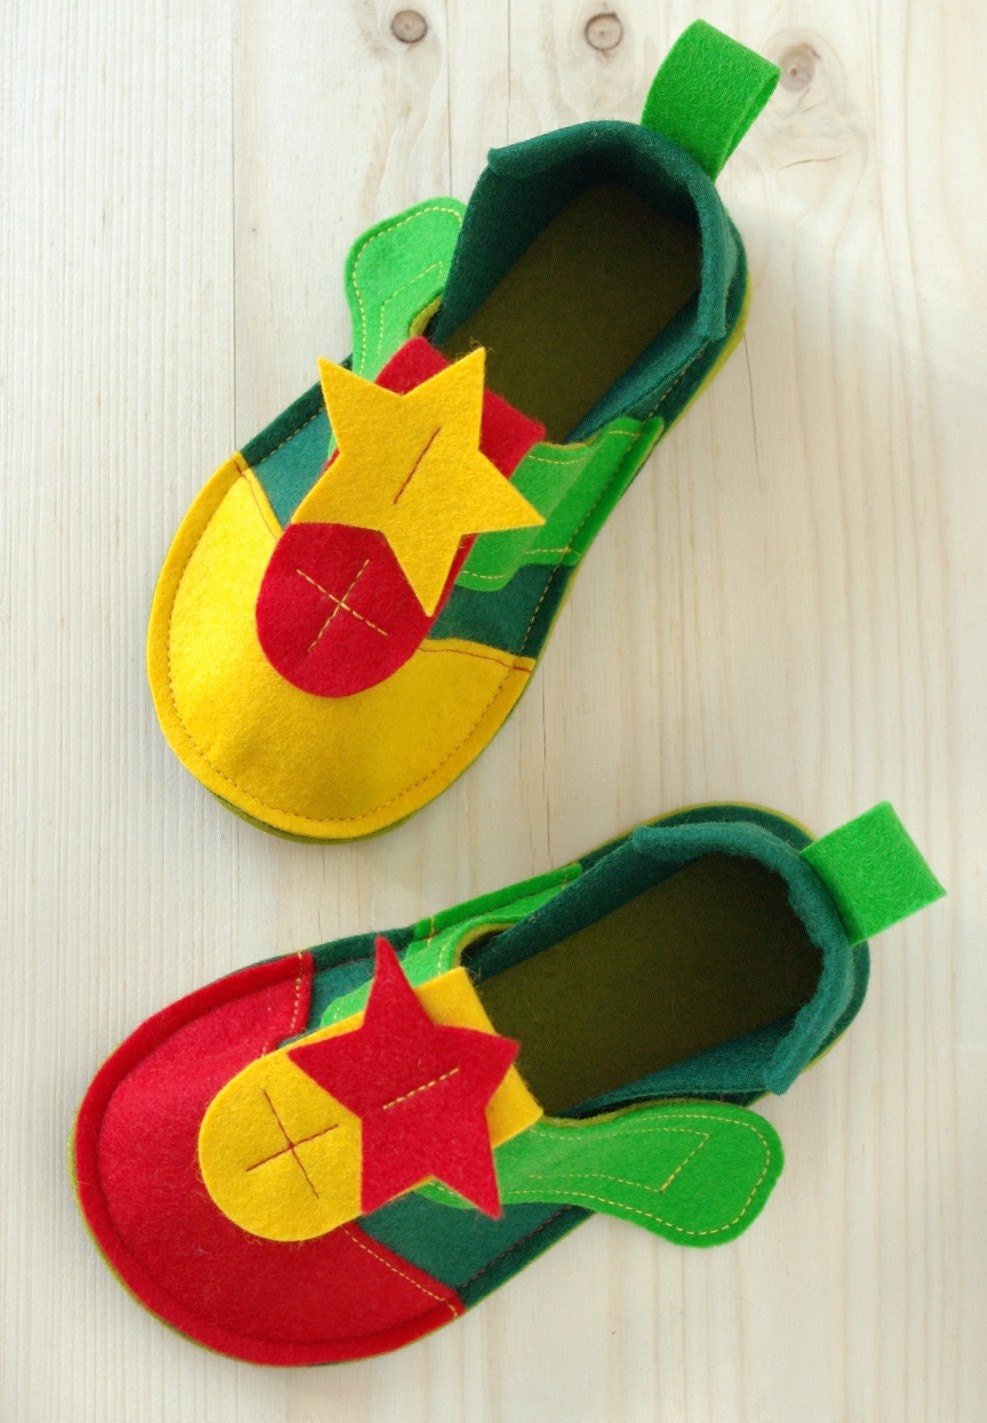 Toddler shoes Peppi Color - multi colored toddler booties with non slip soles - pure wool felt toddler slippers